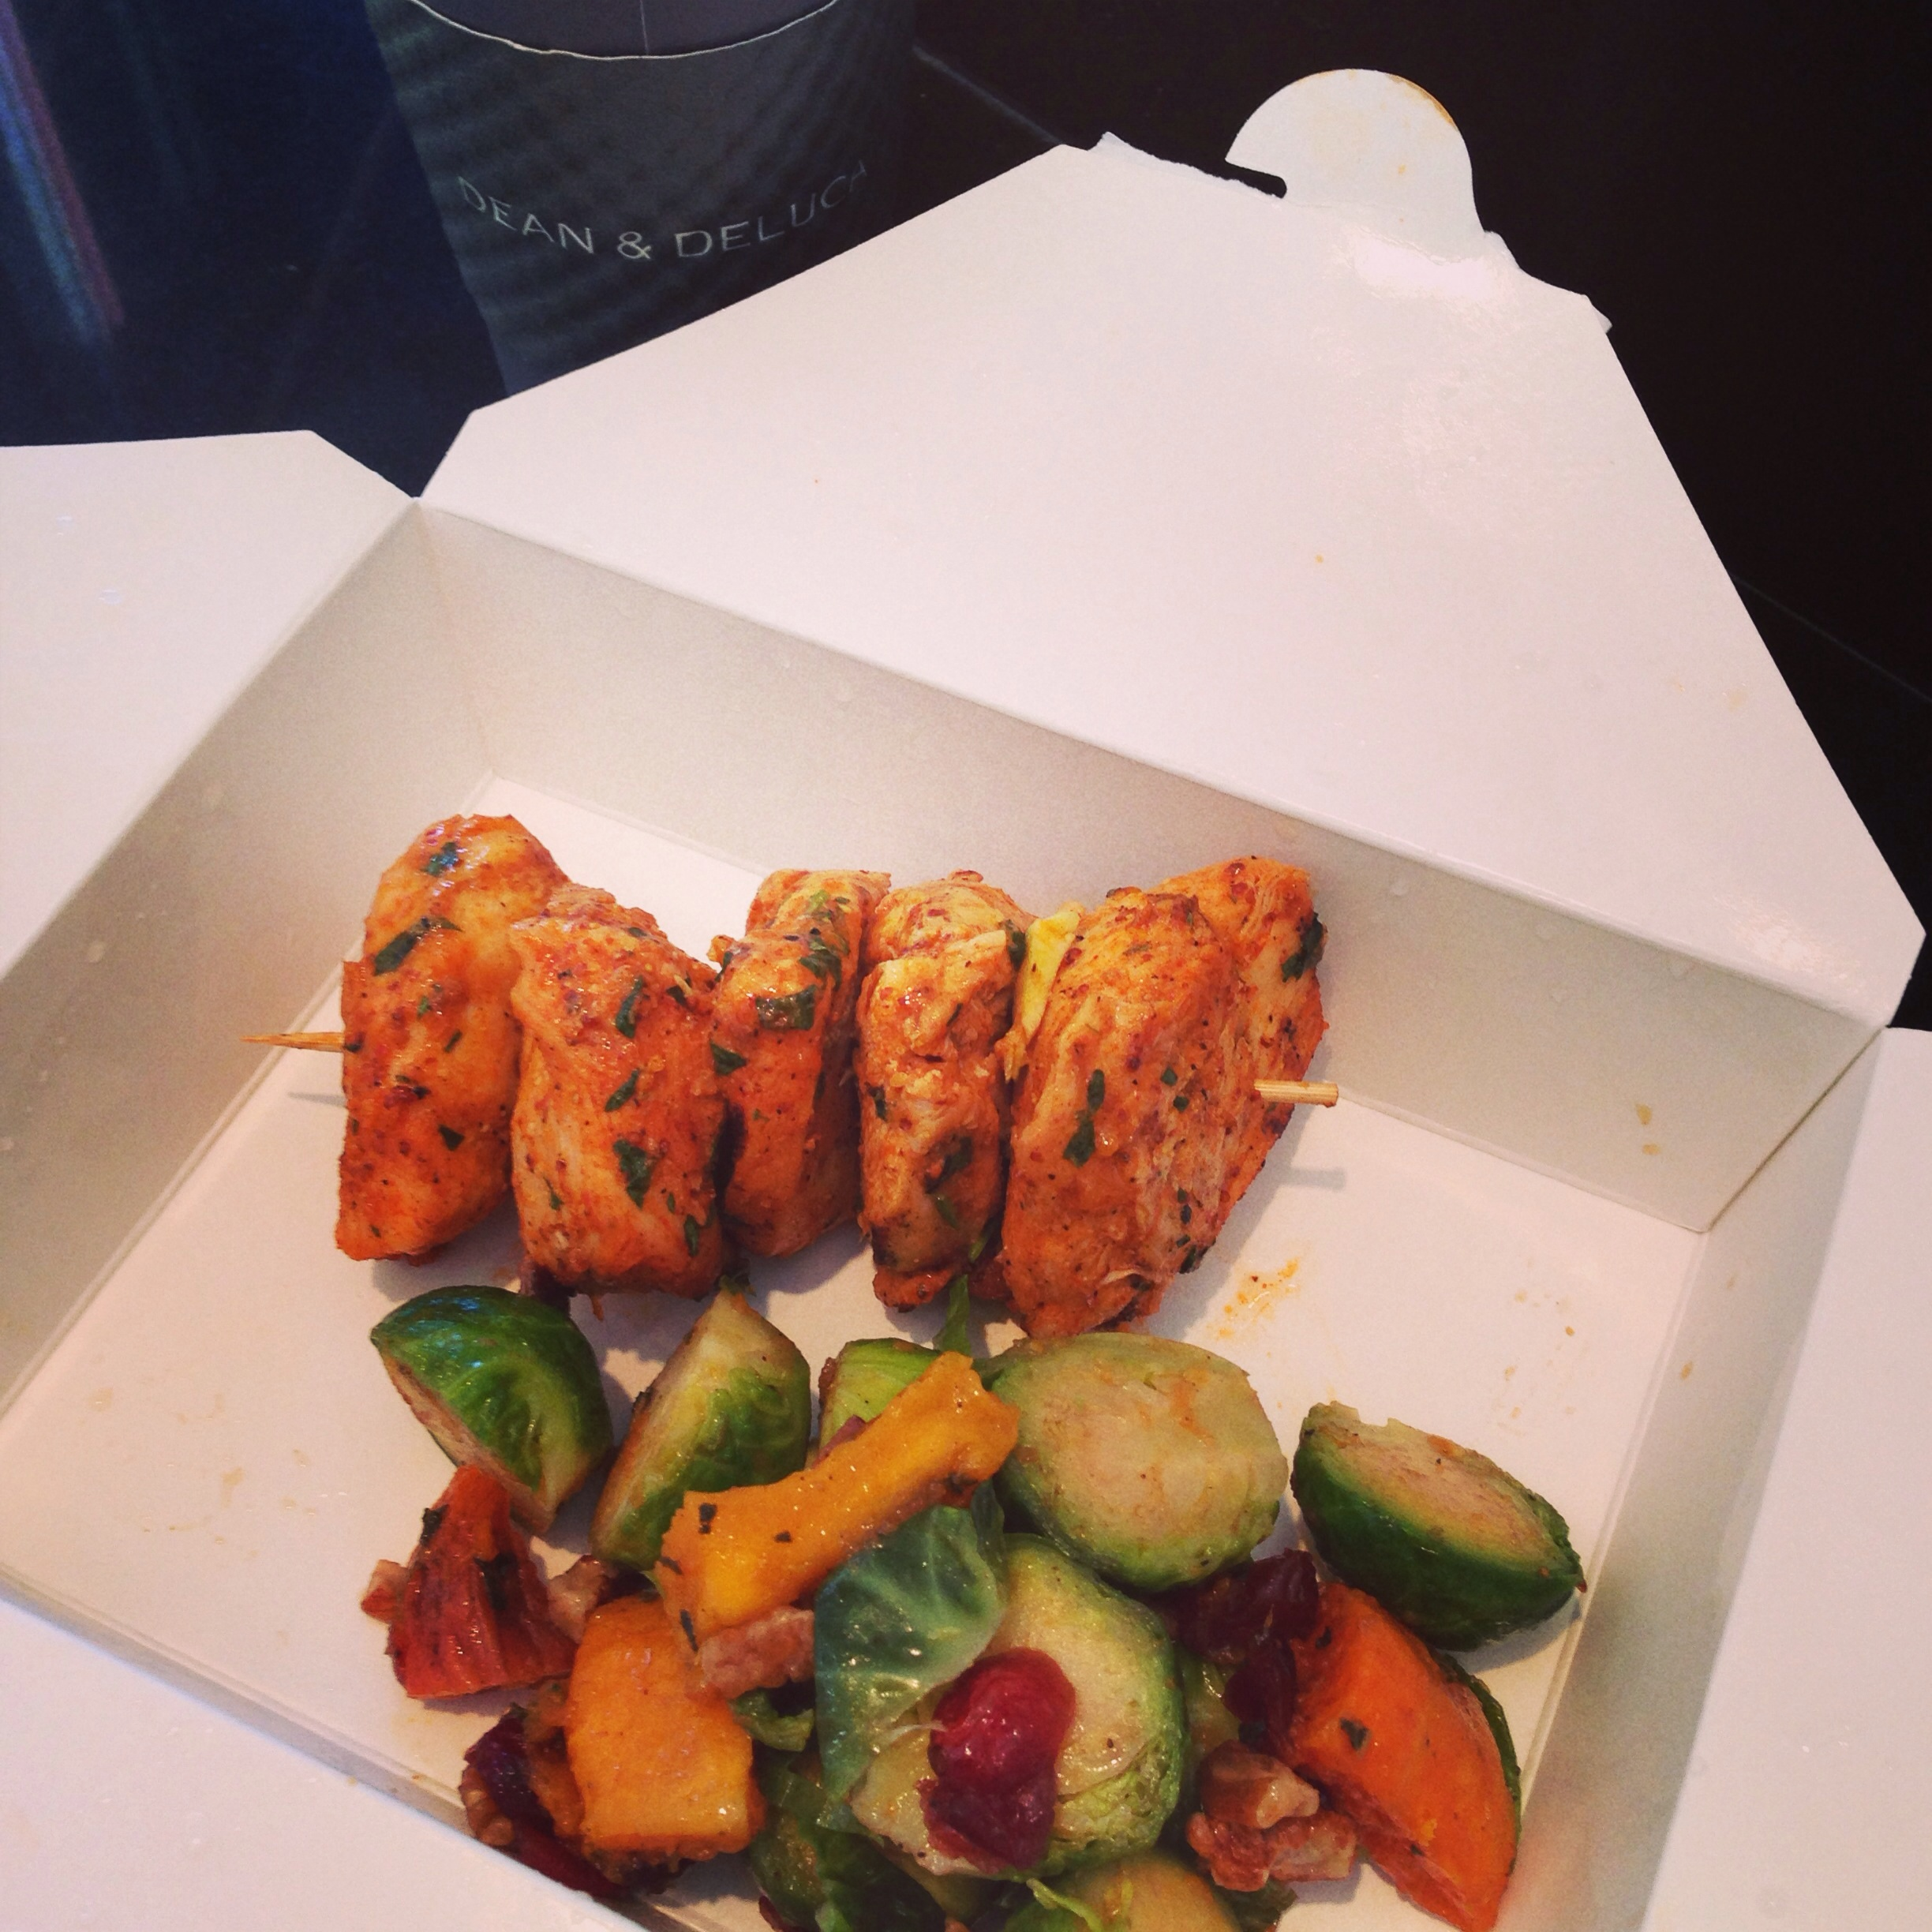 Chicken kabob & Brussels sprouts salad